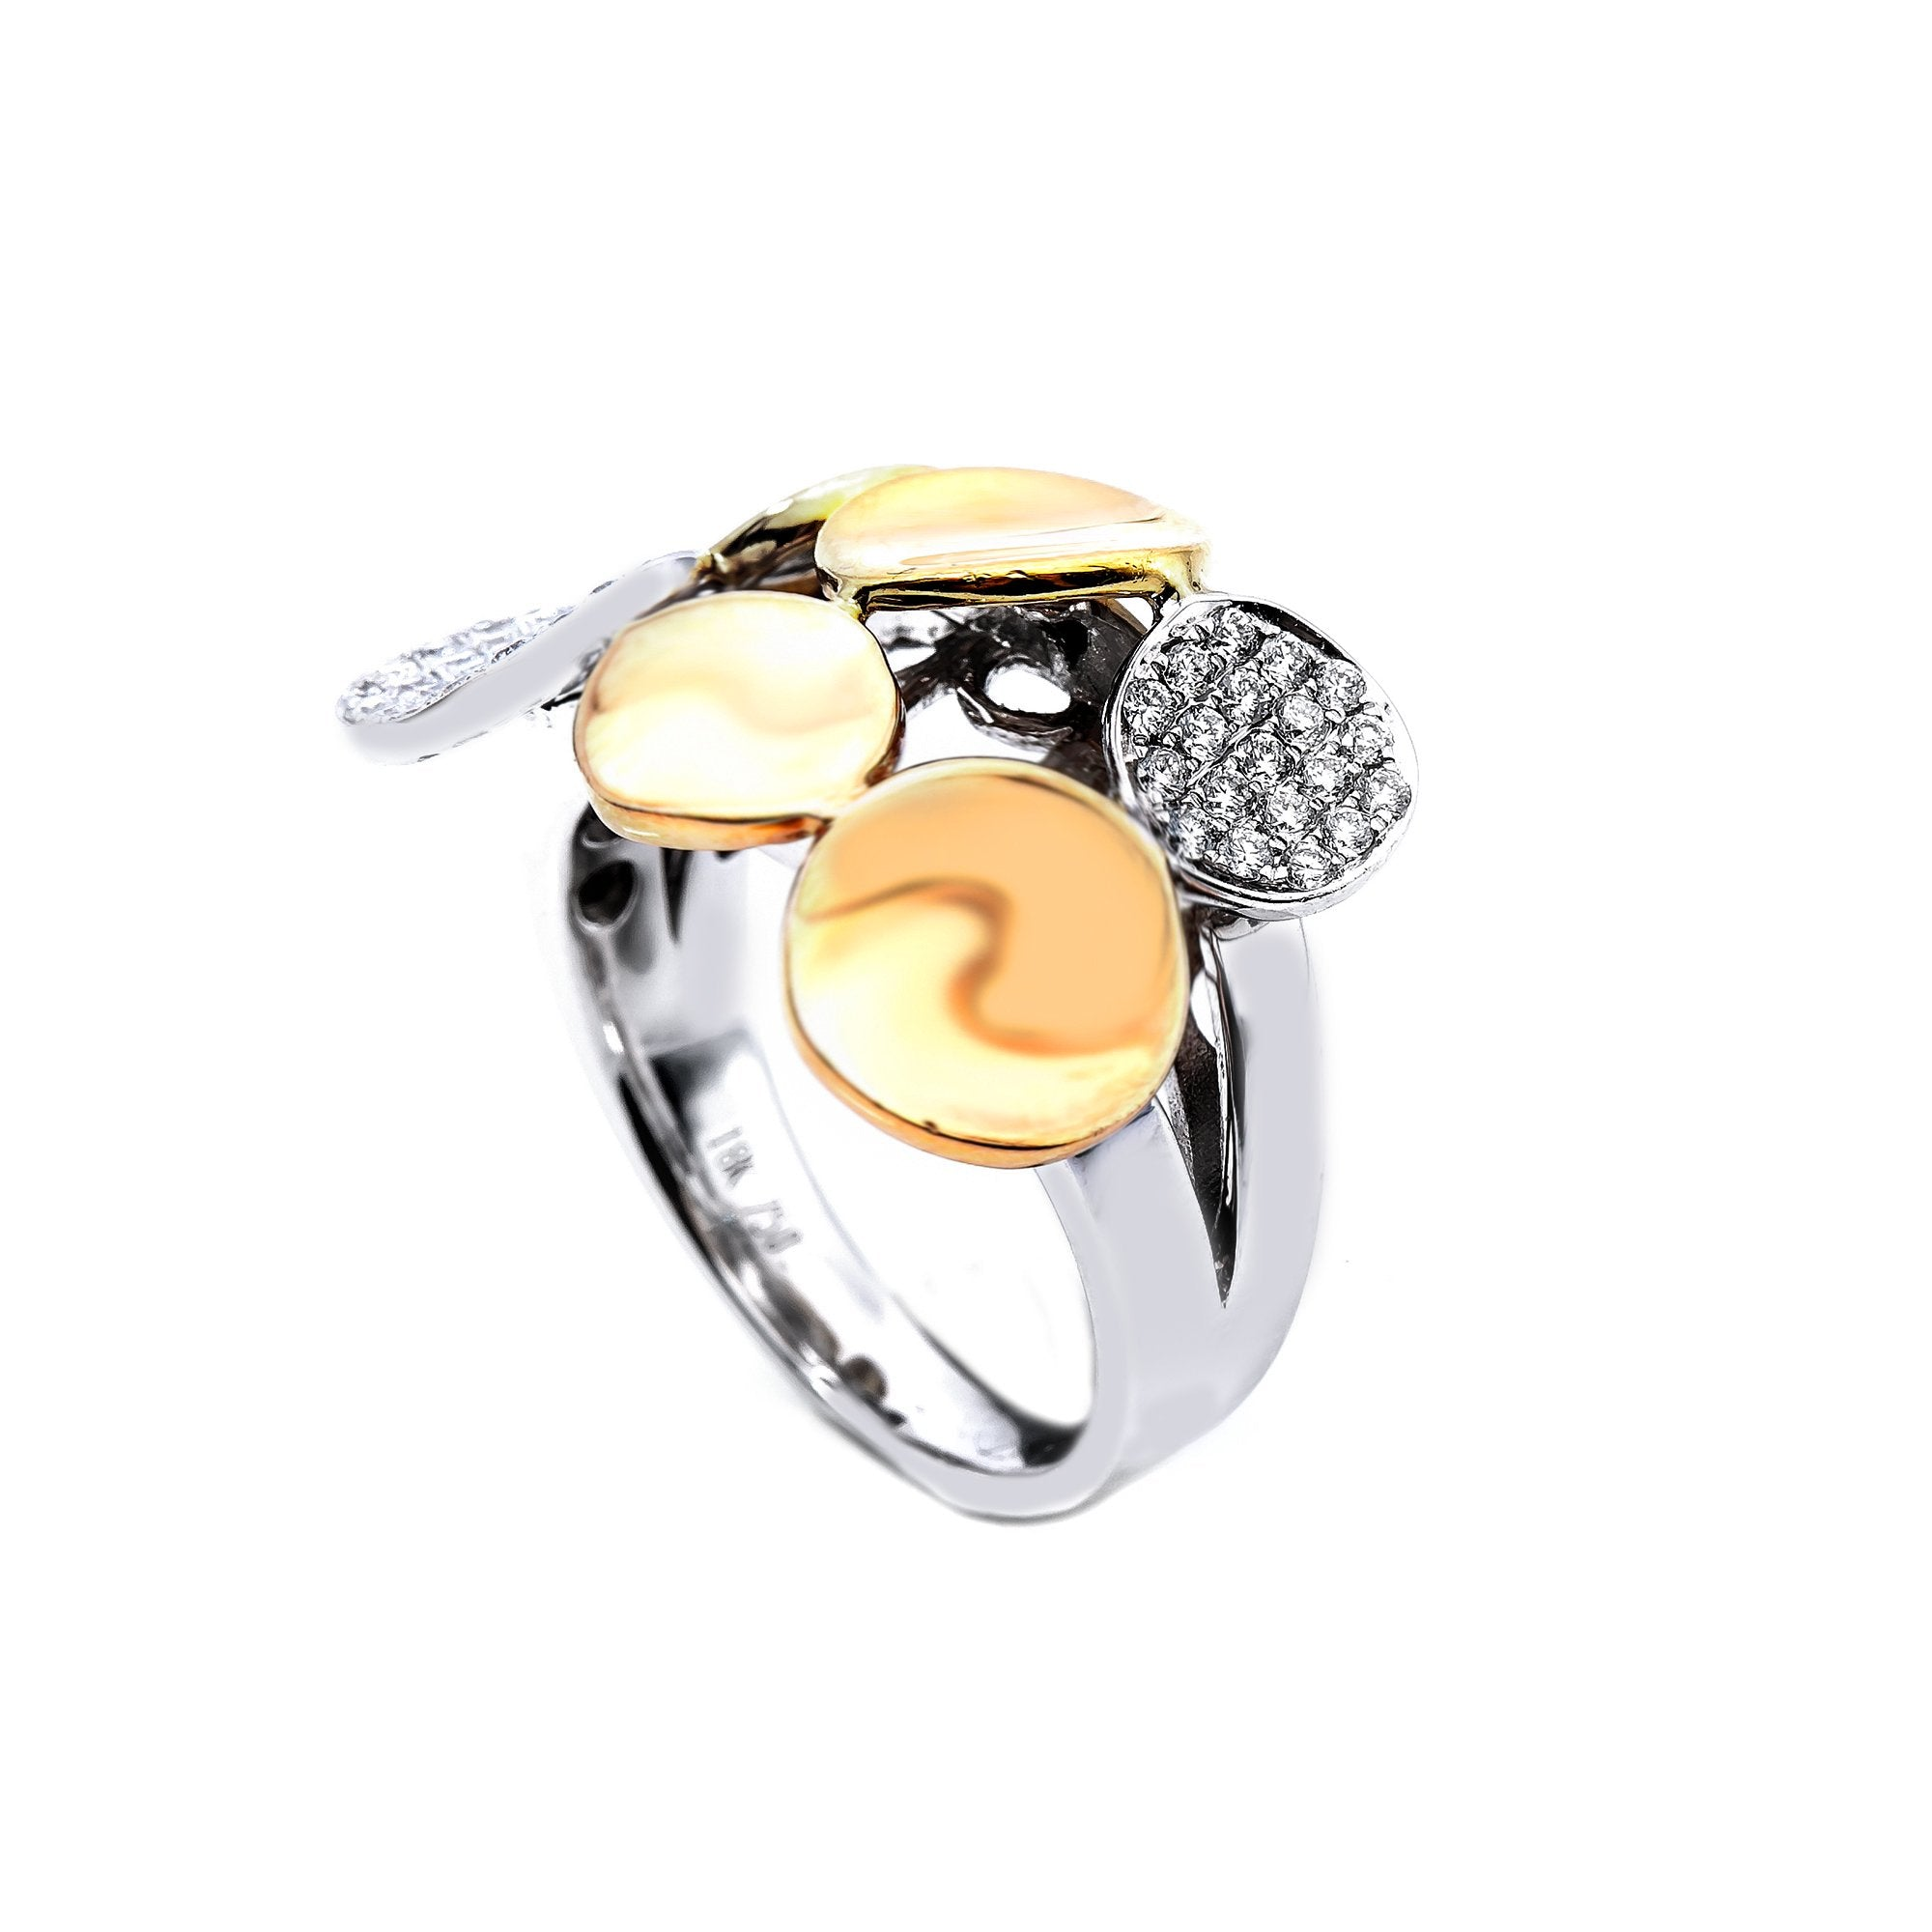 18K White and Rose  Gold Oval Shaped Ring